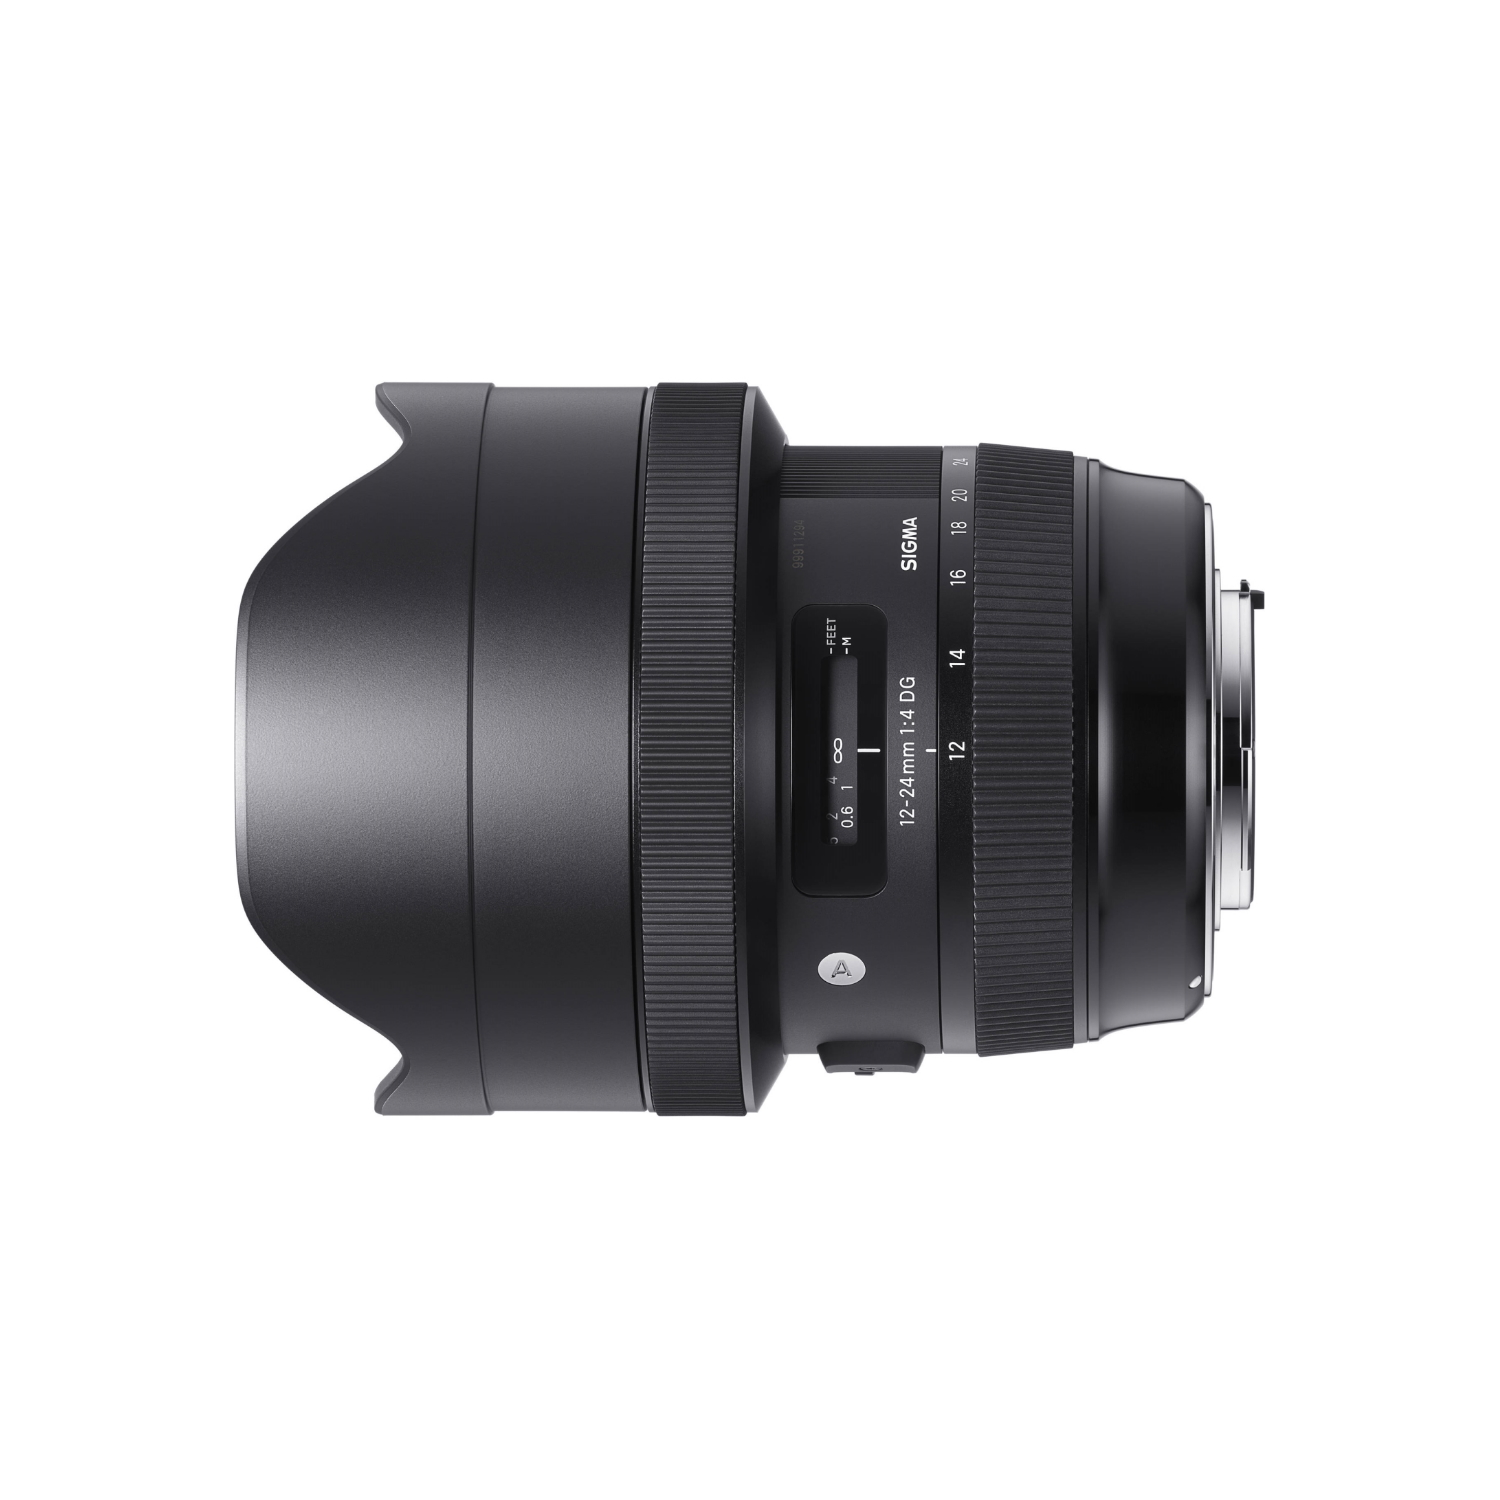 4205954 - Sigma 12-24mm f/4.0 DG HSM Art